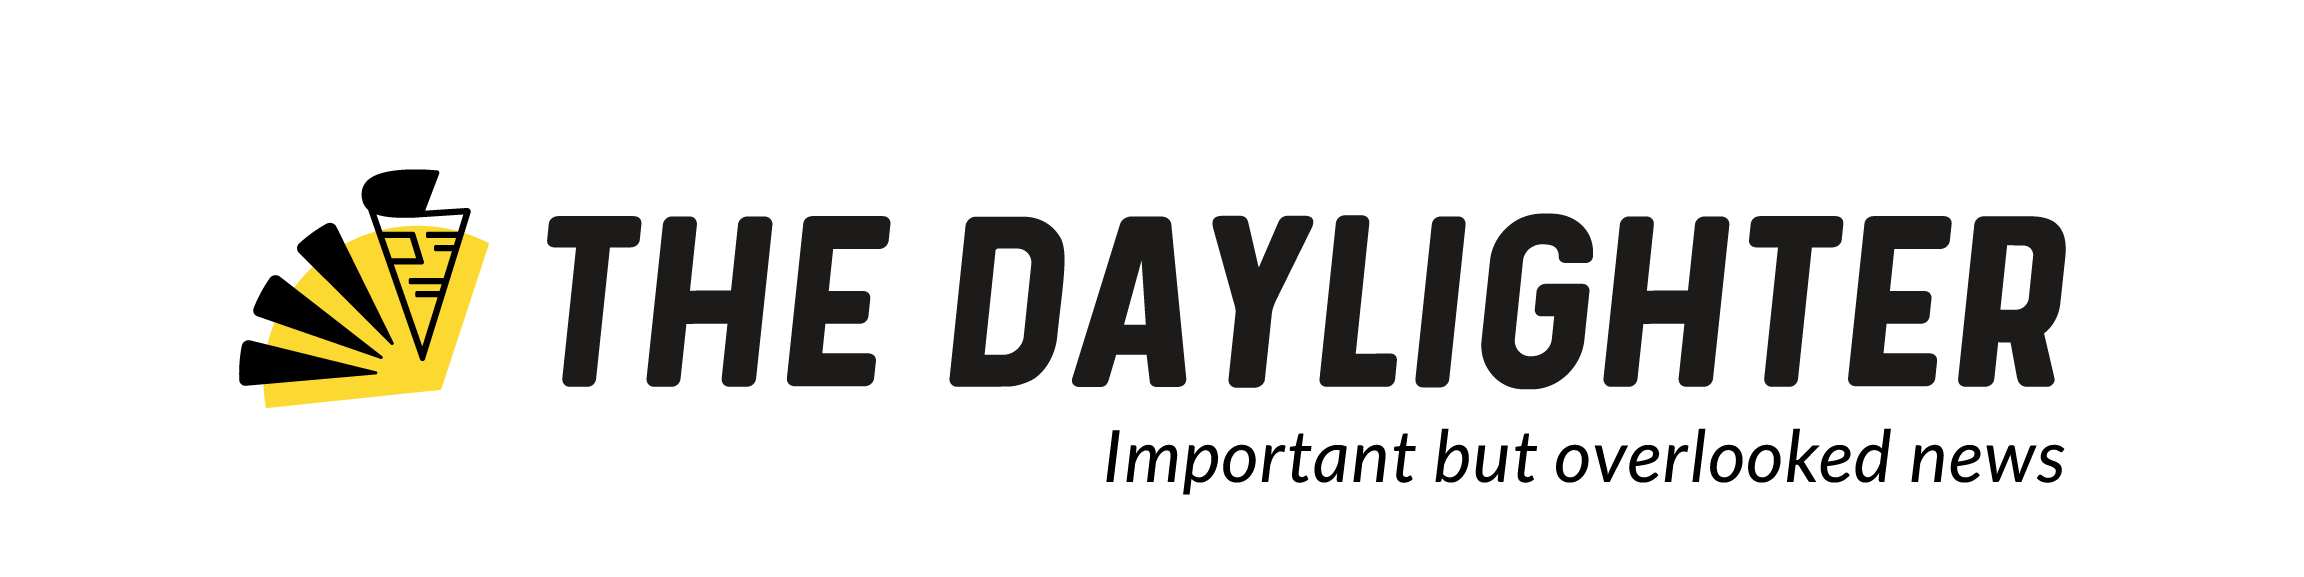 daylighter_logo_final_primary full color tagline below